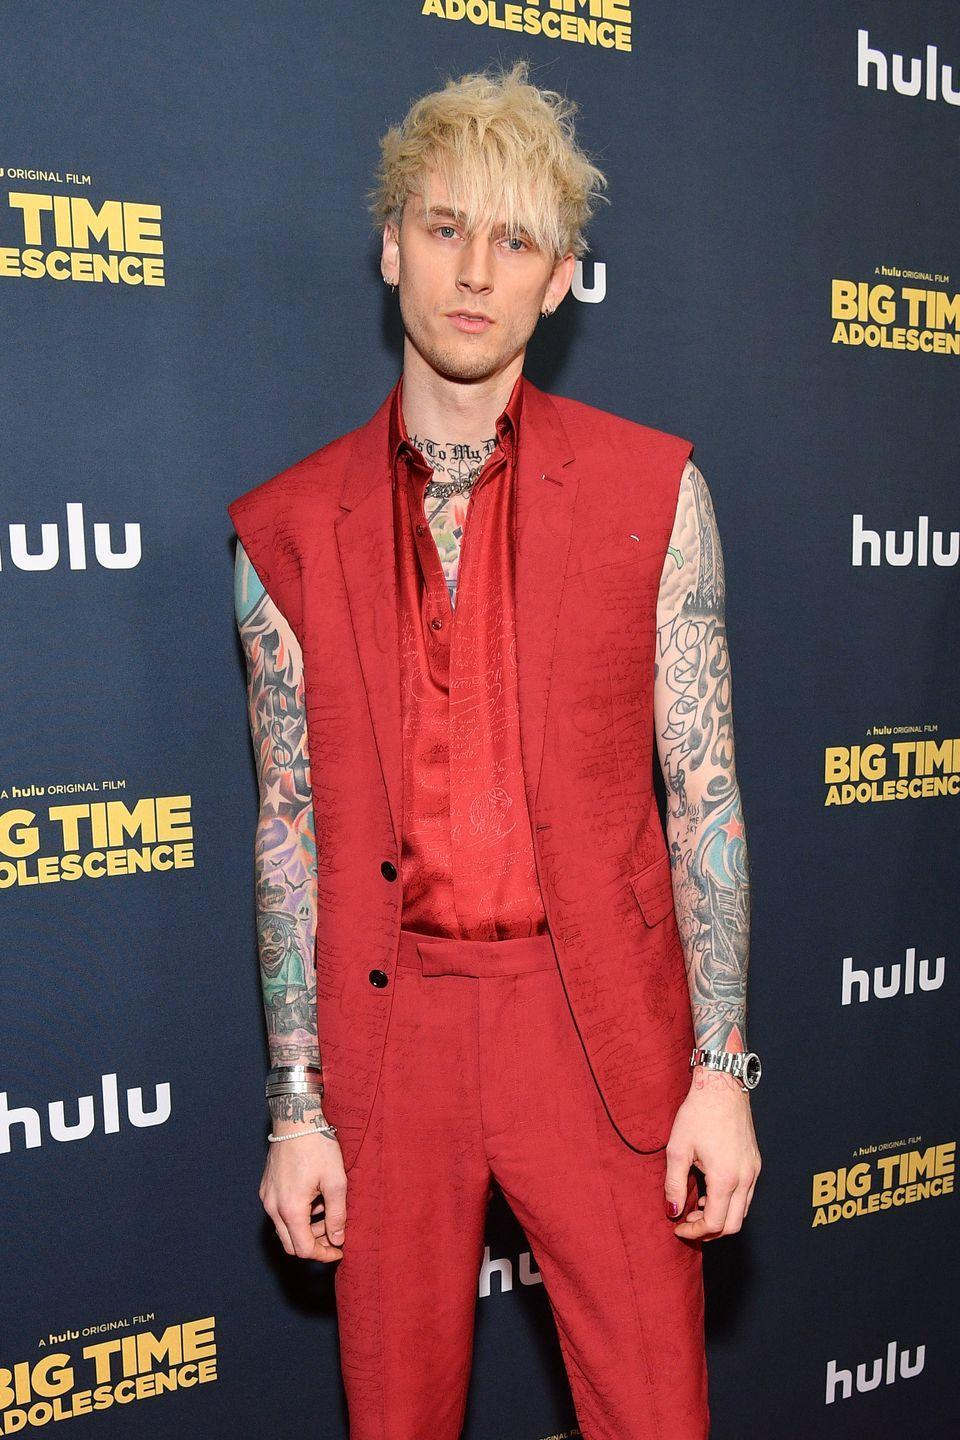 <p><strong><strong>Blonde</strong></strong></p><p>For the past few years though, the rapper/actor (real name: Colson Baker) has been known to rock an edgy, platinum blond hue that actually suits his rocker-chic style. </p>